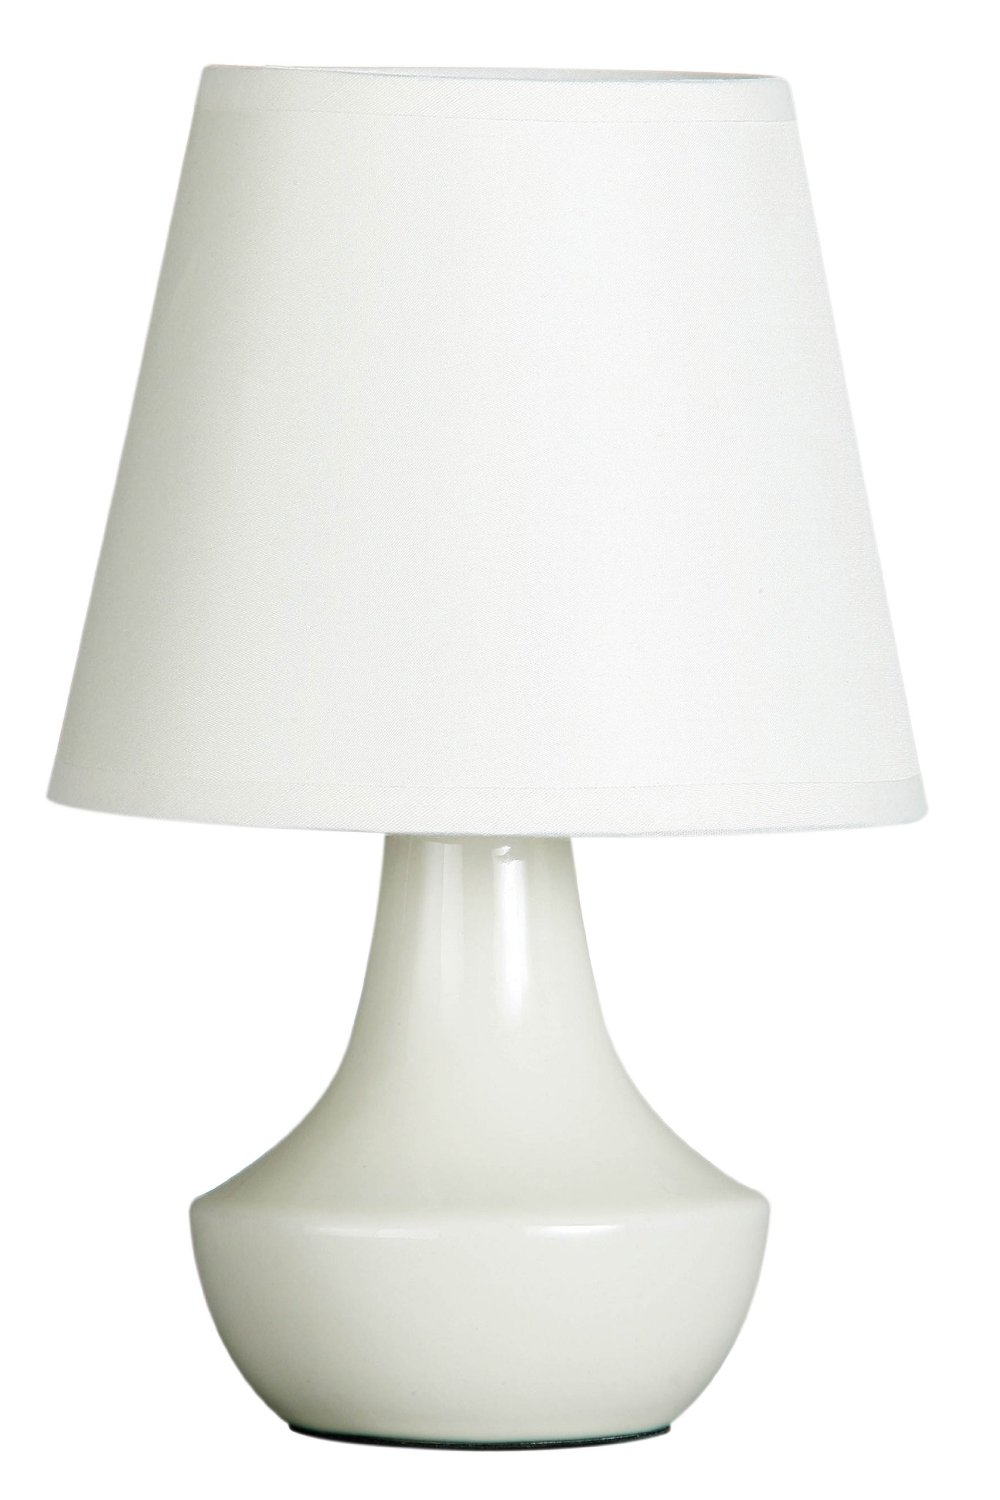 Set of two cream ceramic bedside table lamps with shade ebay for Bedside table lamp shades